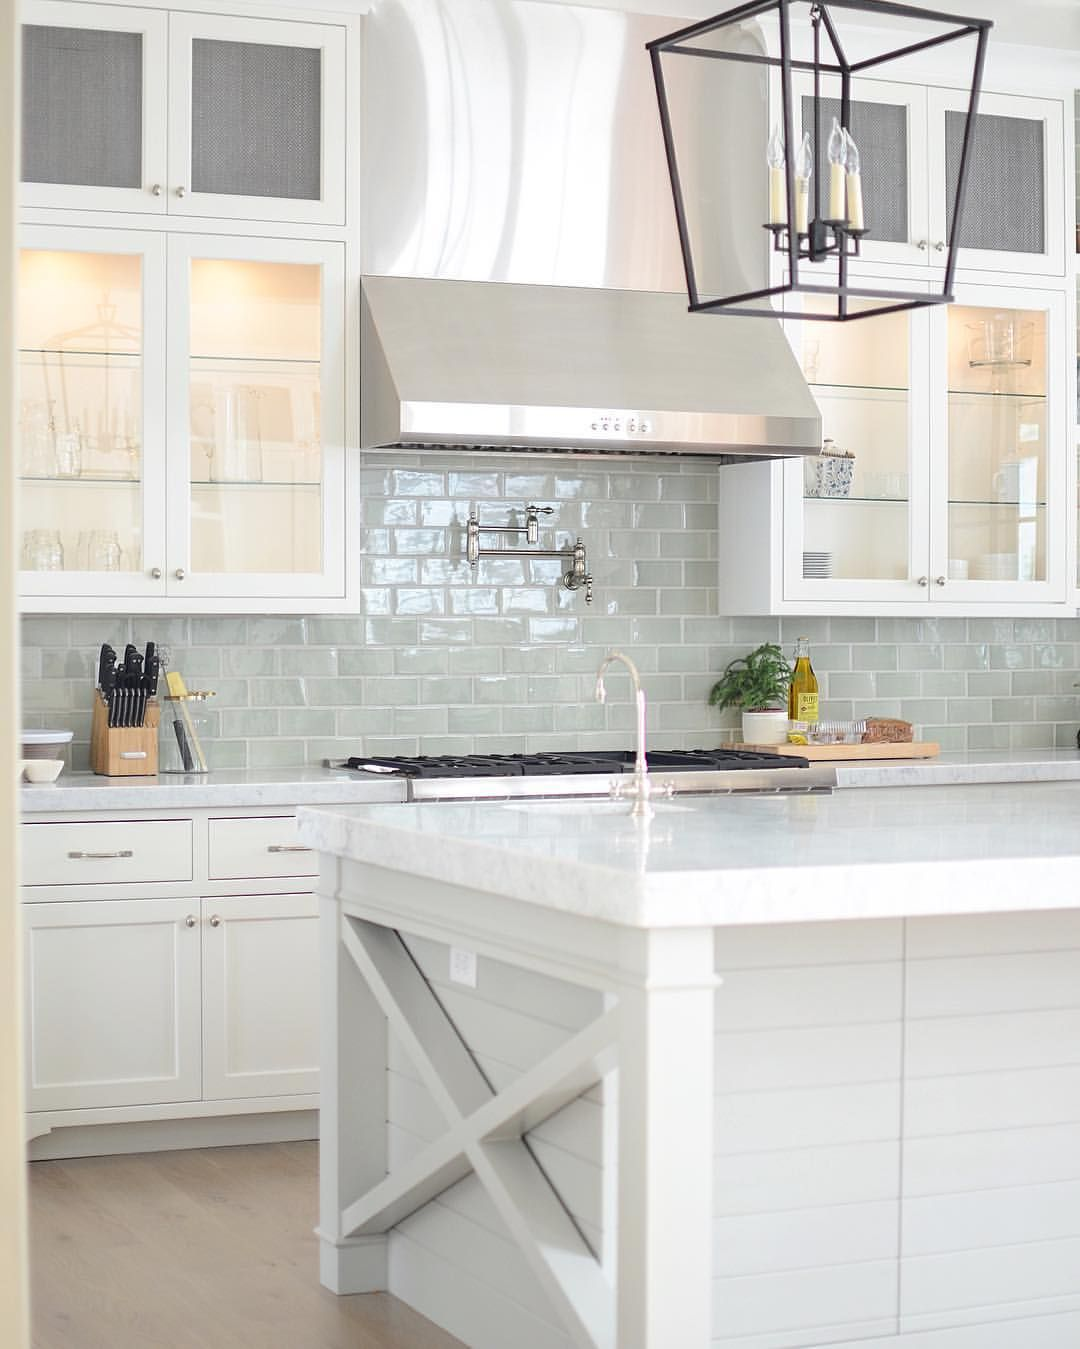 15 Best Kitchen Backsplash Tile Ideas: Bright White Kitchen With Pale Blue Subway Tile Backsplash